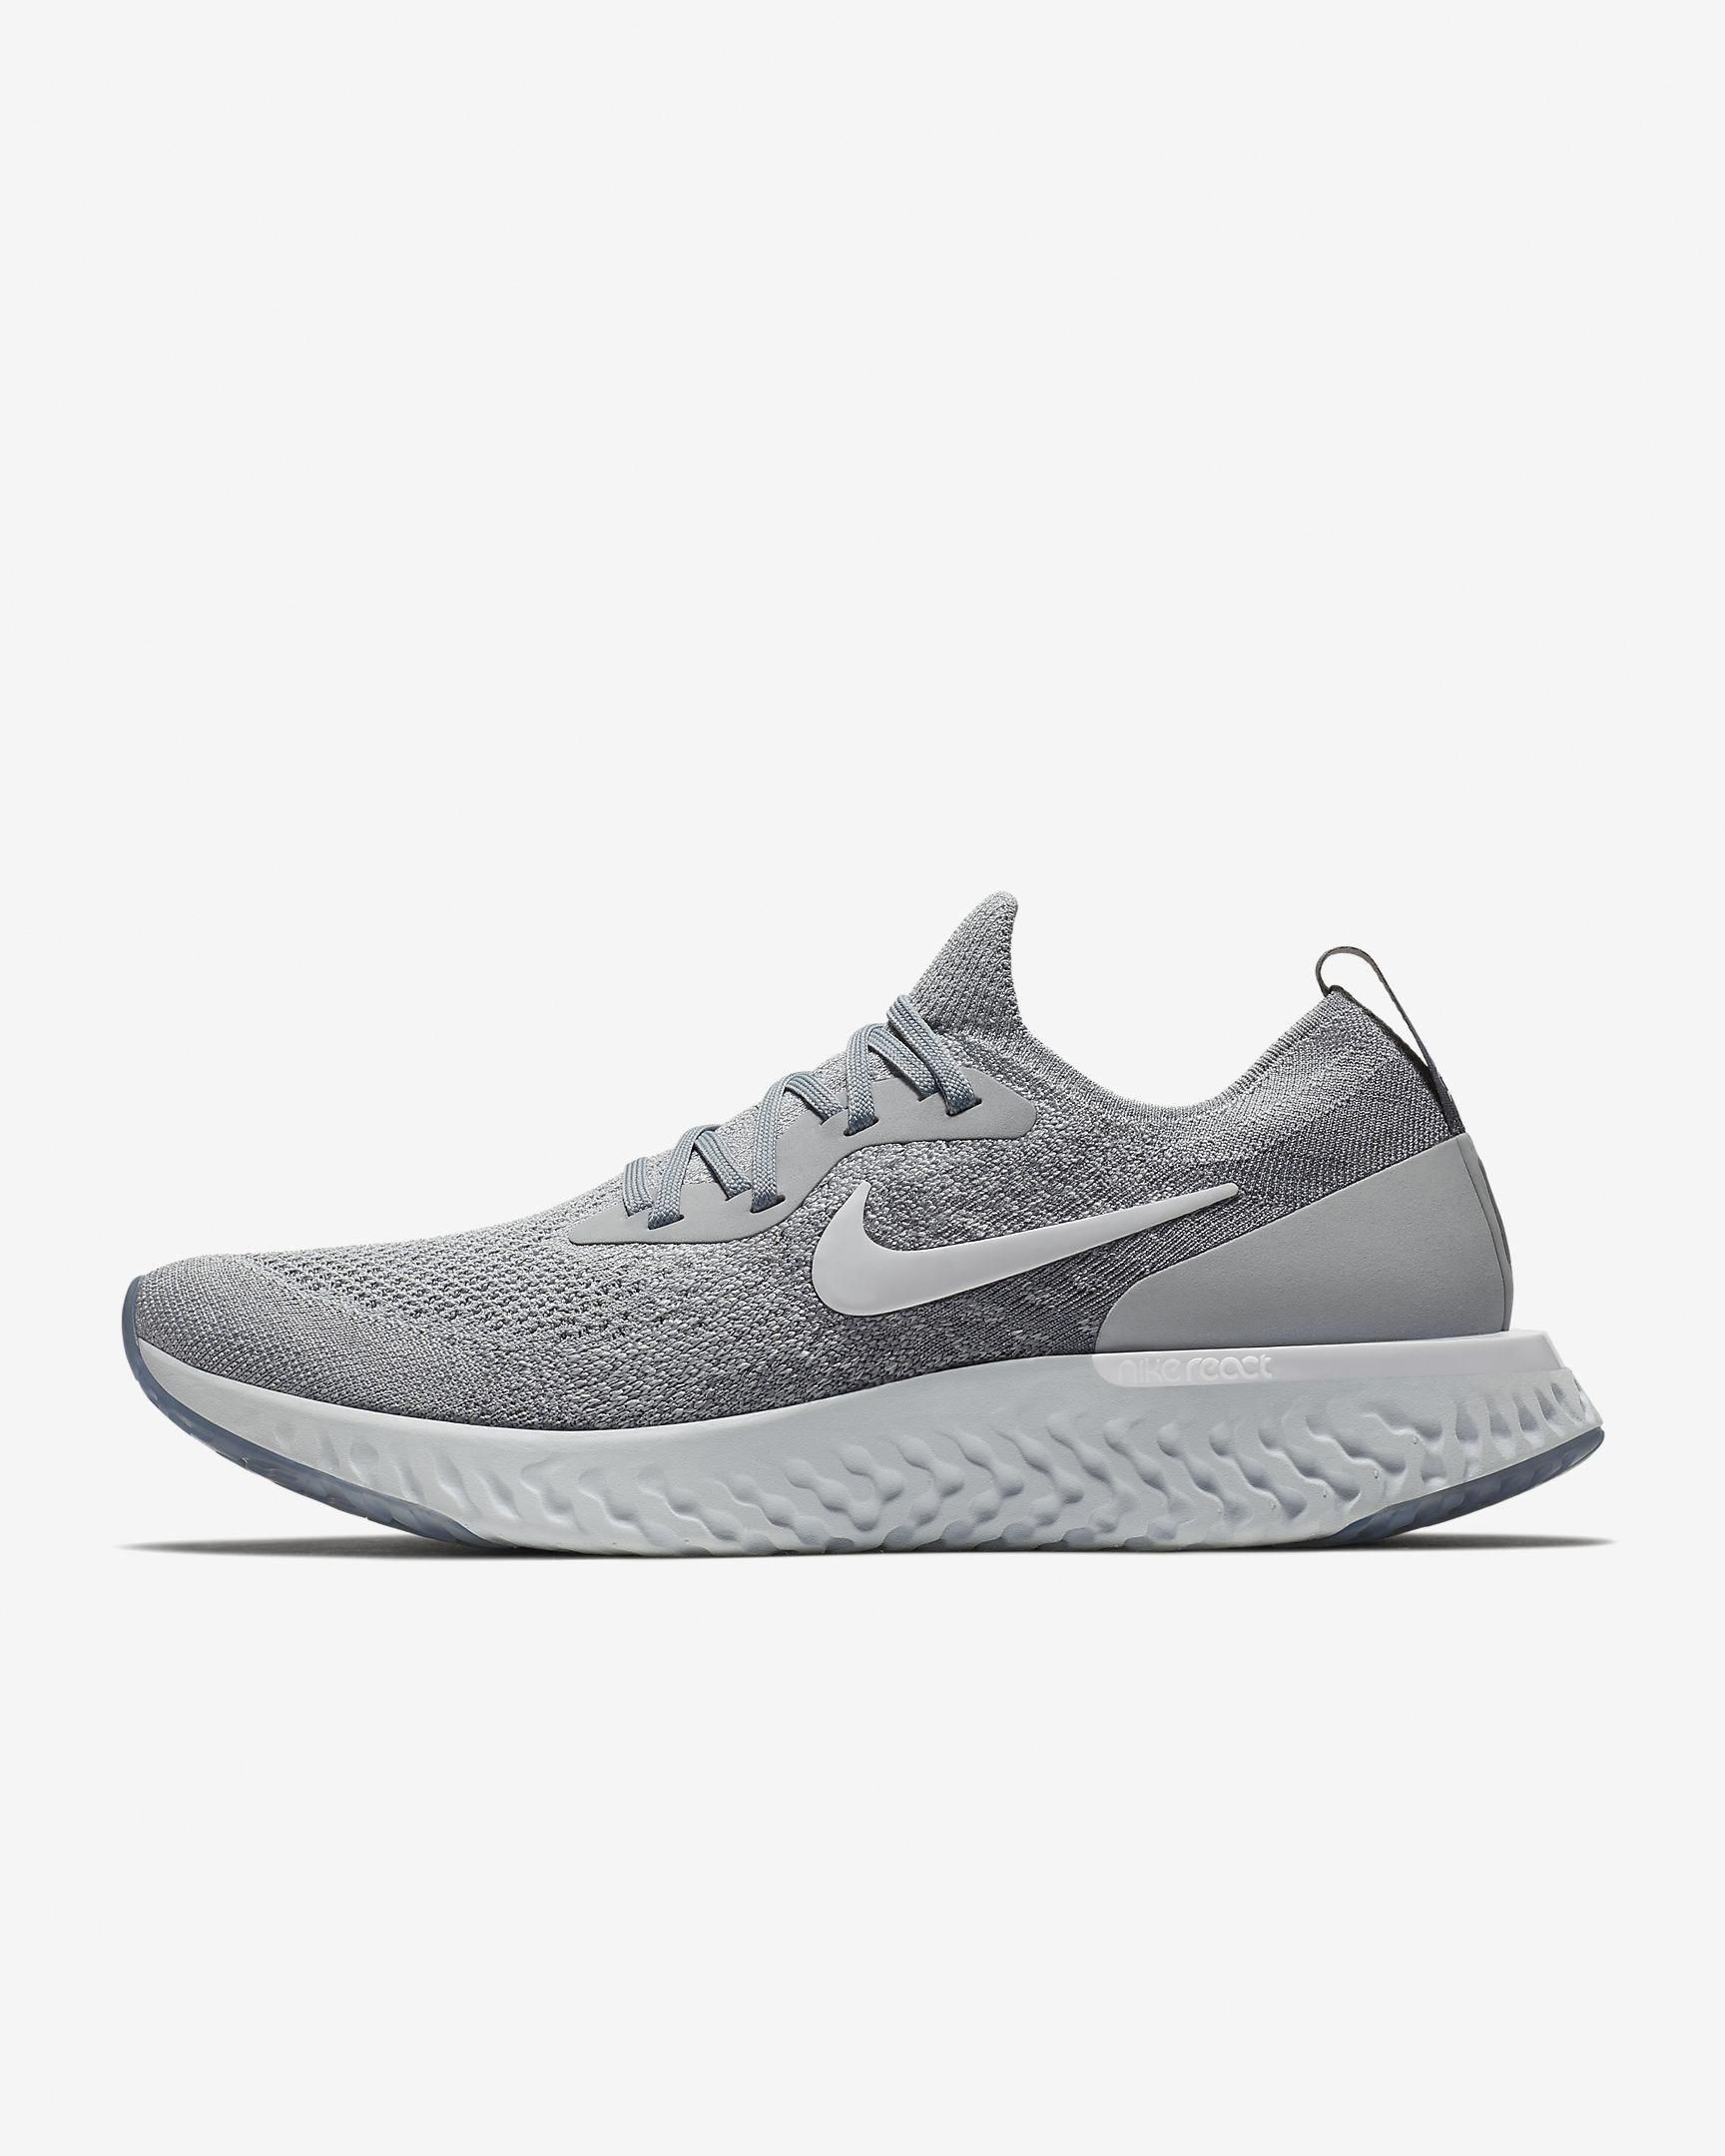 best service a02f8 df5c8 Cheapest And Latest Authentic Unisex Couple Nike Epic React Flyknit Mens Running  Shoe Wolf Grey Cool Grey Pure Platinum White AQ0067-002  runningshoes